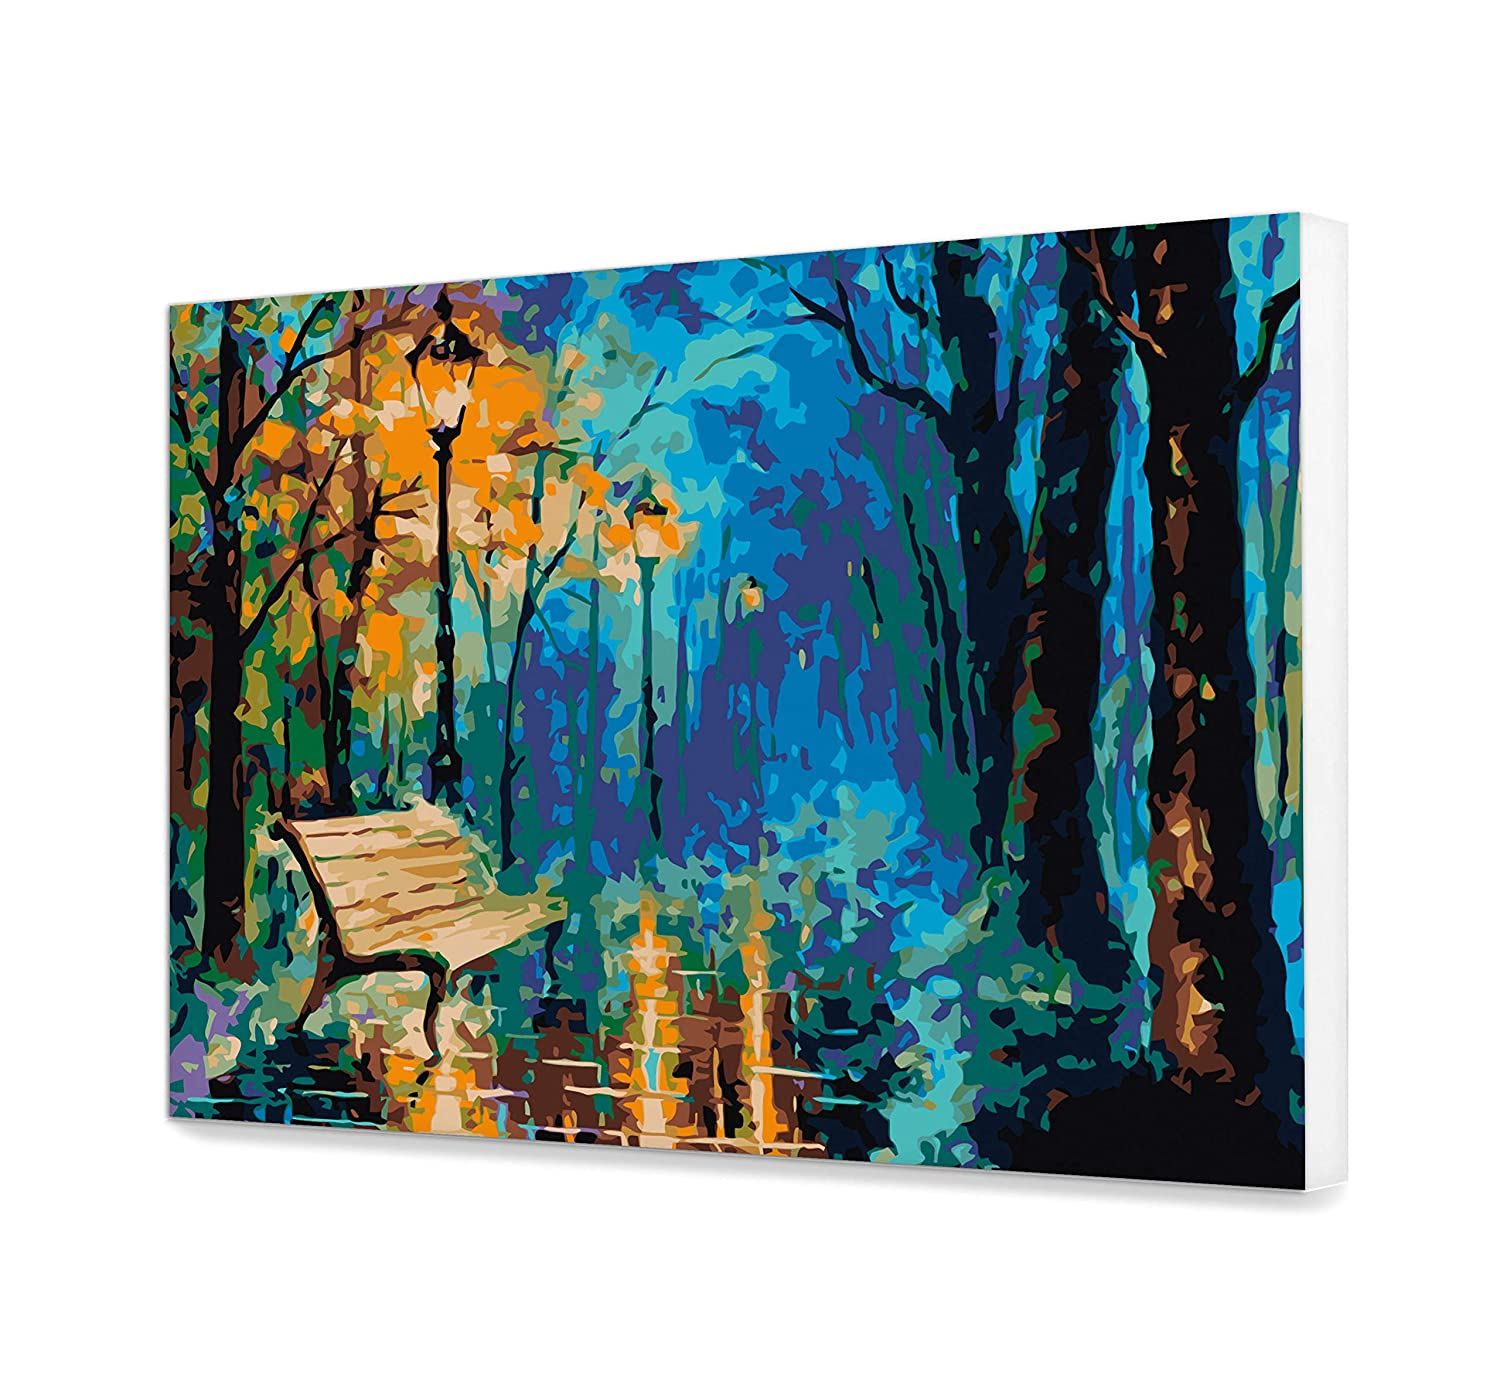 Landscape Canvas Painting Art Design Colorful Picture DIY Canvas Trees Painting Number Kit Acrylic Night Painting Home Decor High-Quality Picture